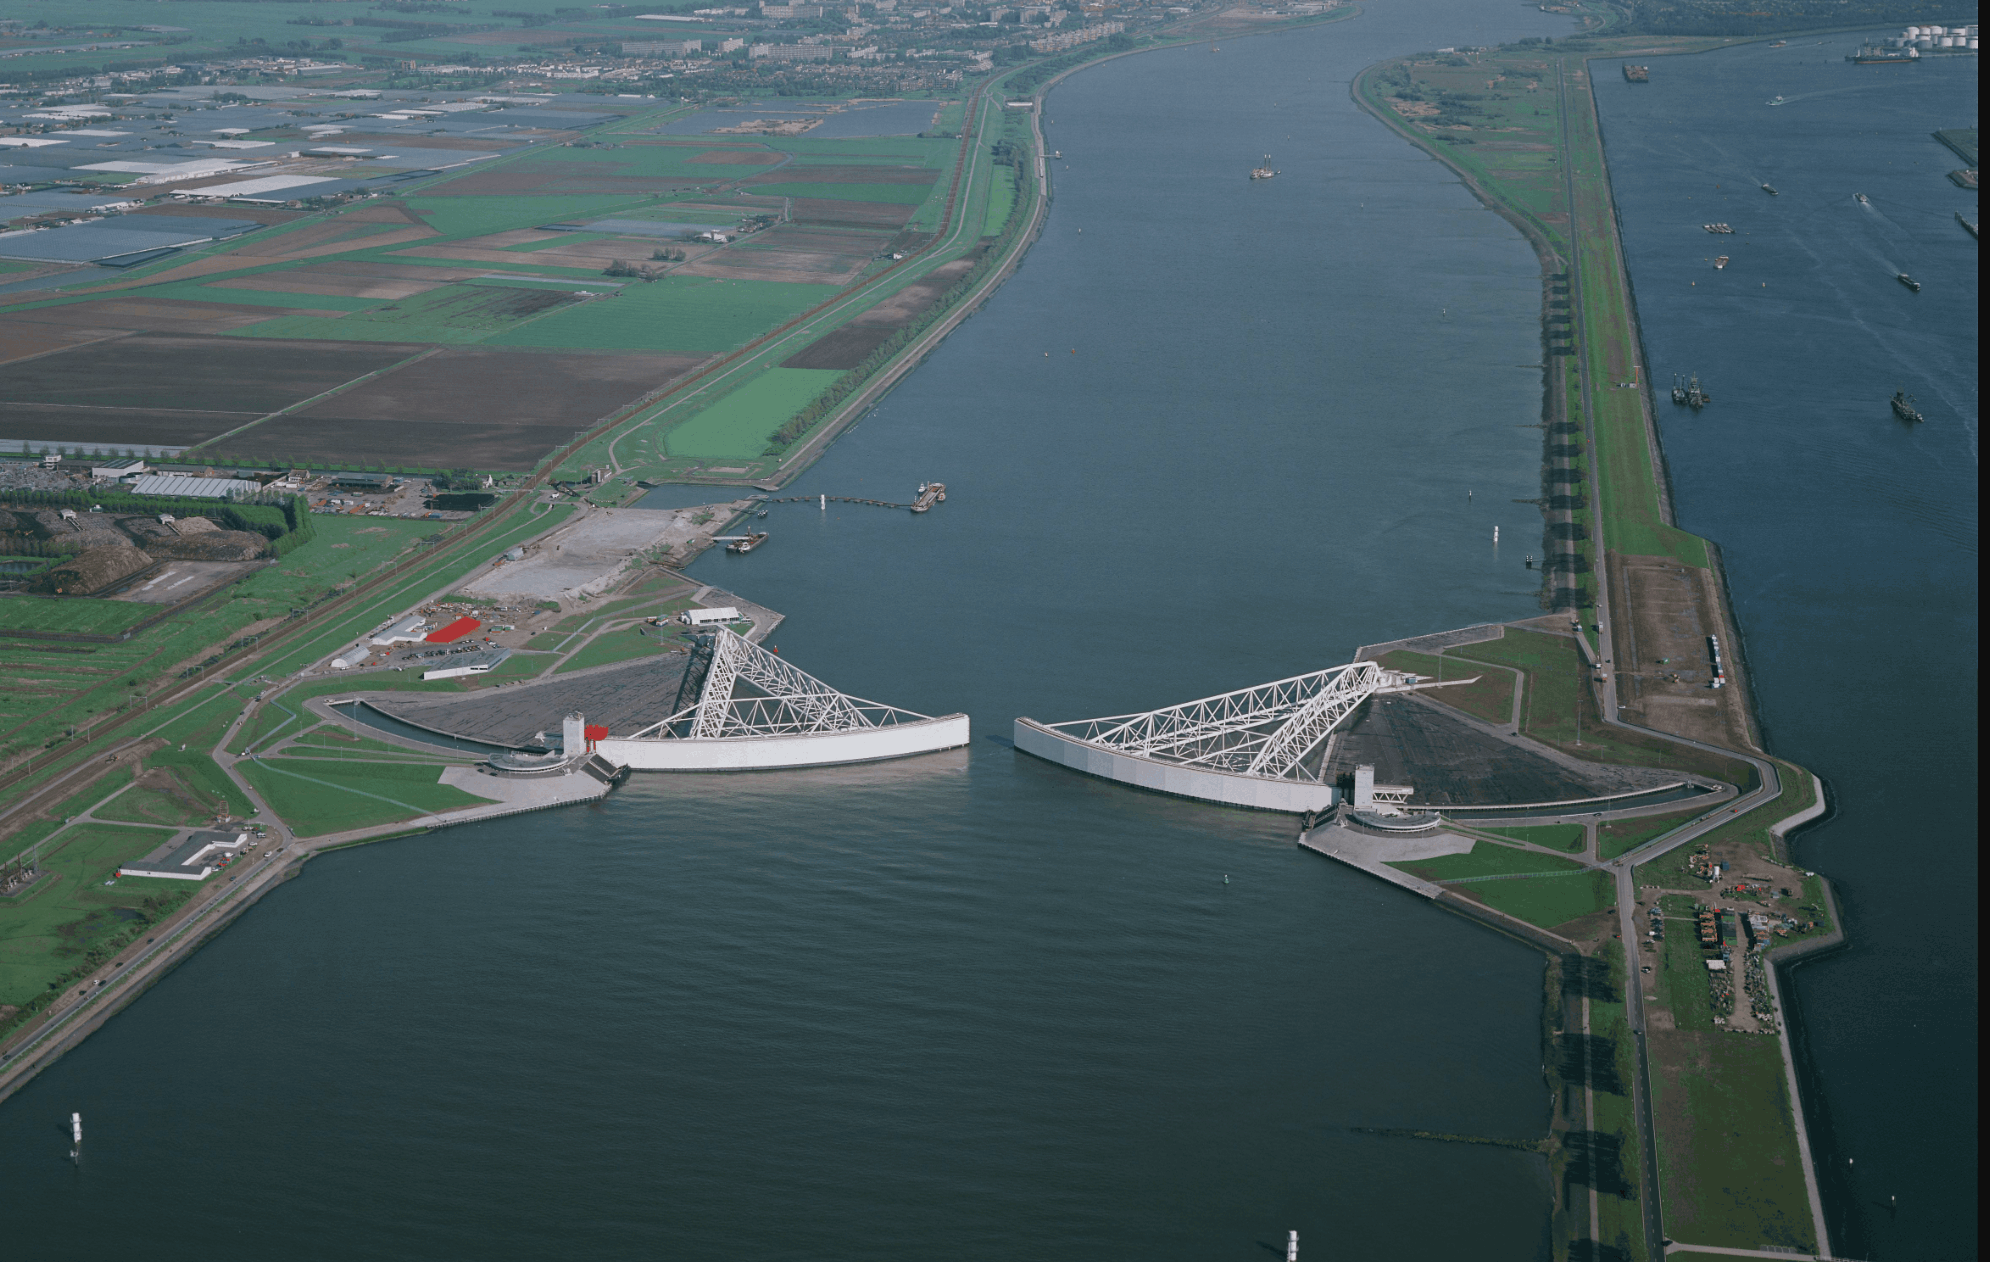 Maeskantkering storm surge barrier near Rotterdam (photo: Bart van Eyck)